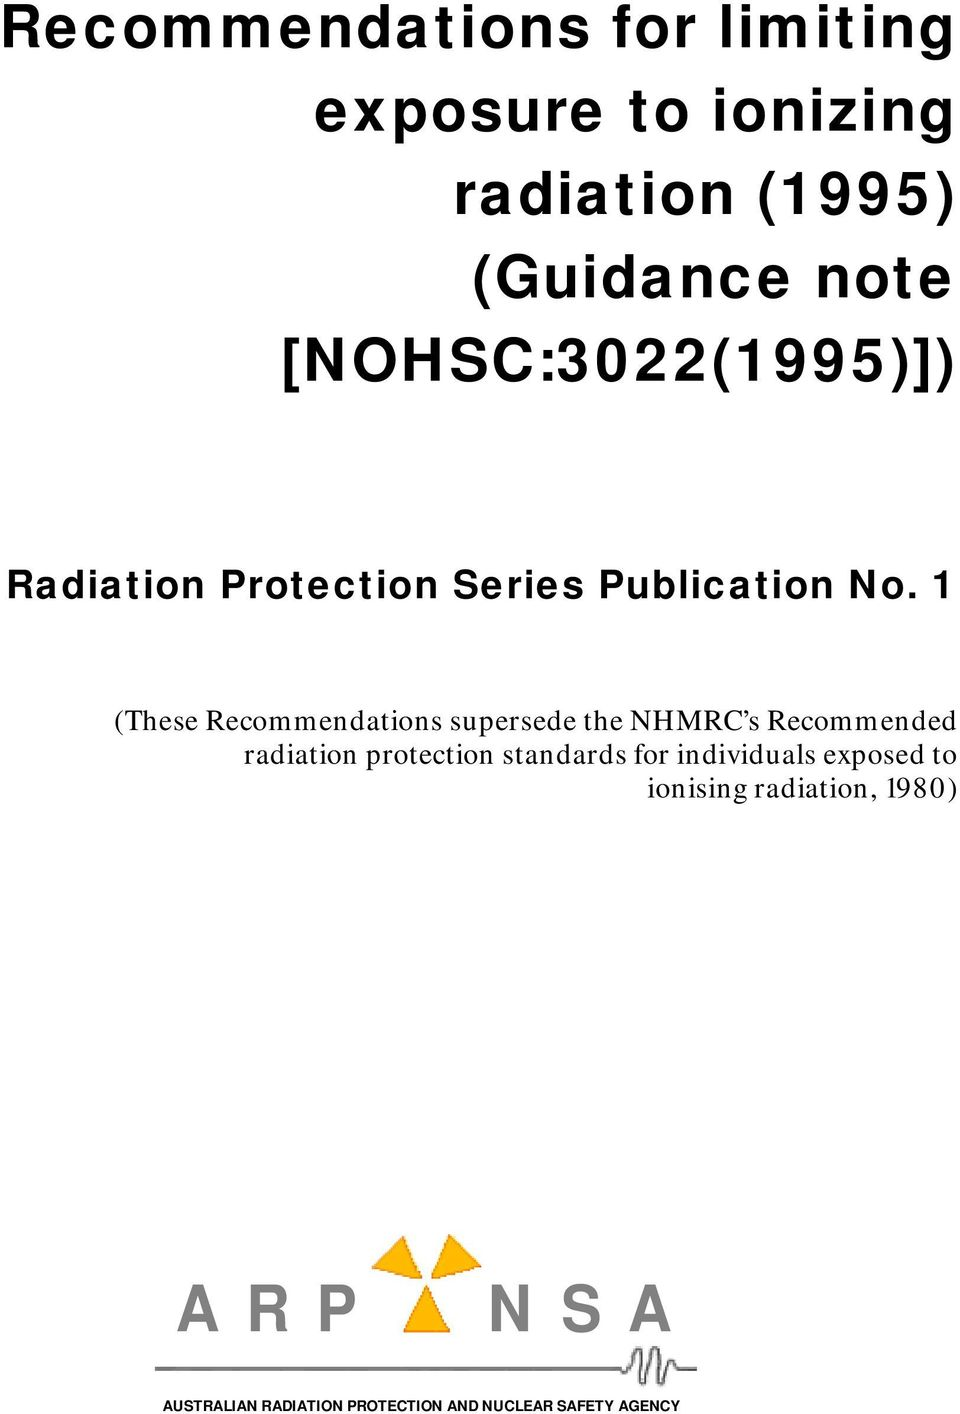 Recommended radiation protection standards for individuals exposed to